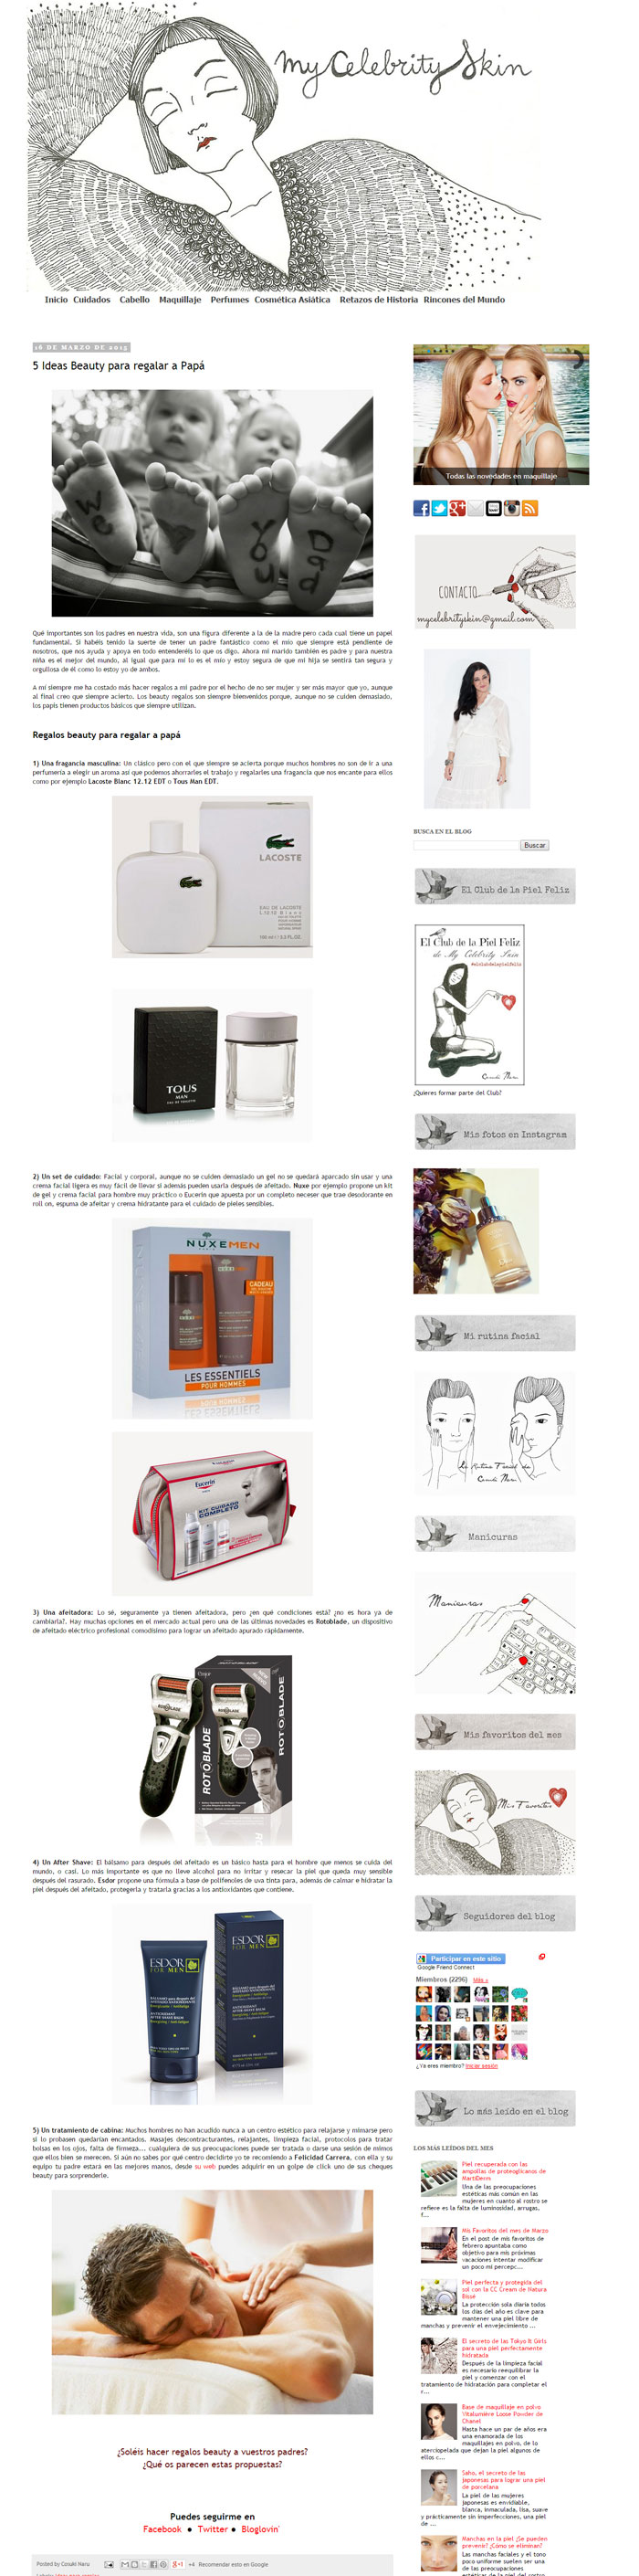 mycelebrityskin-net-5-ideas-beauty-para-regalar-a-papa